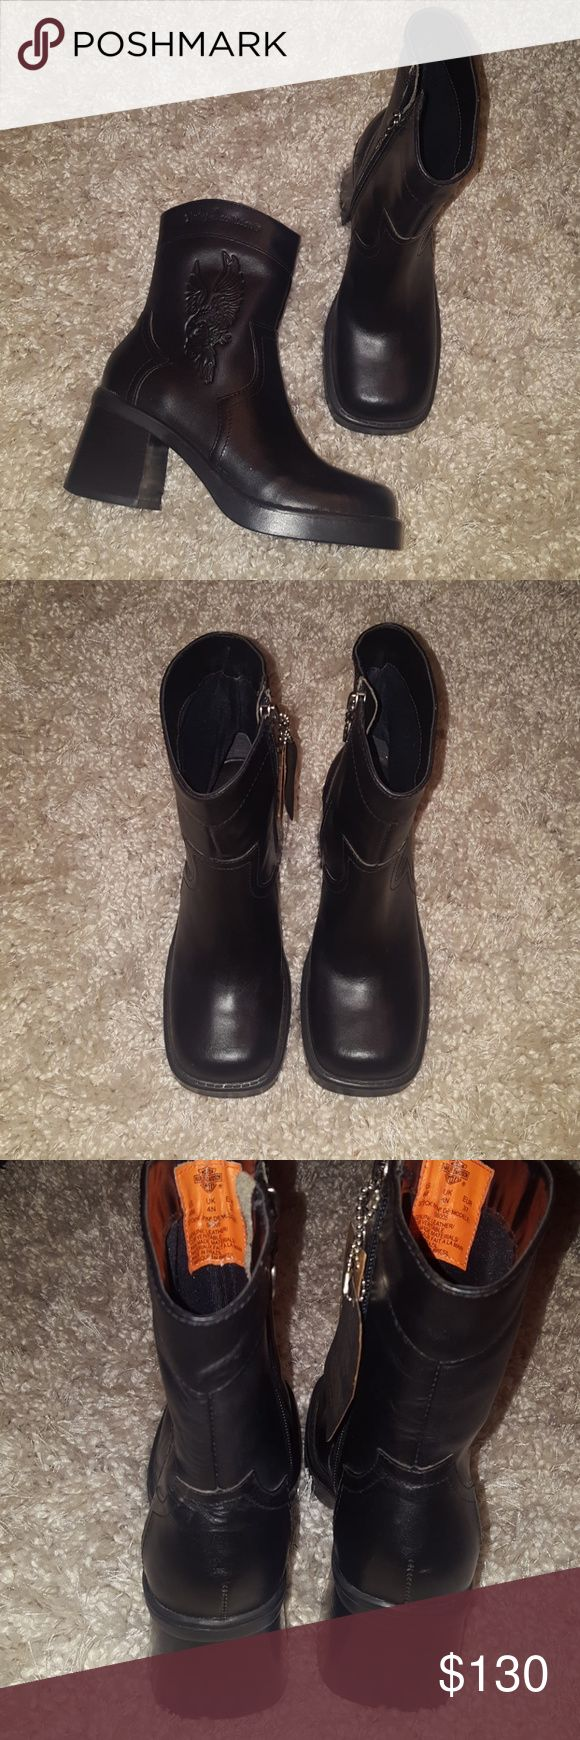 """FINAL PRICE DROP! NWT Harley Davidson Boots Ladies Brand new Harley Davidson moto boots, all leather, about a 2"""" heel, inner side zipper. 3 sizes available. Runs true to size. Harley-Davidson Shoes Combat & Moto Boots"""